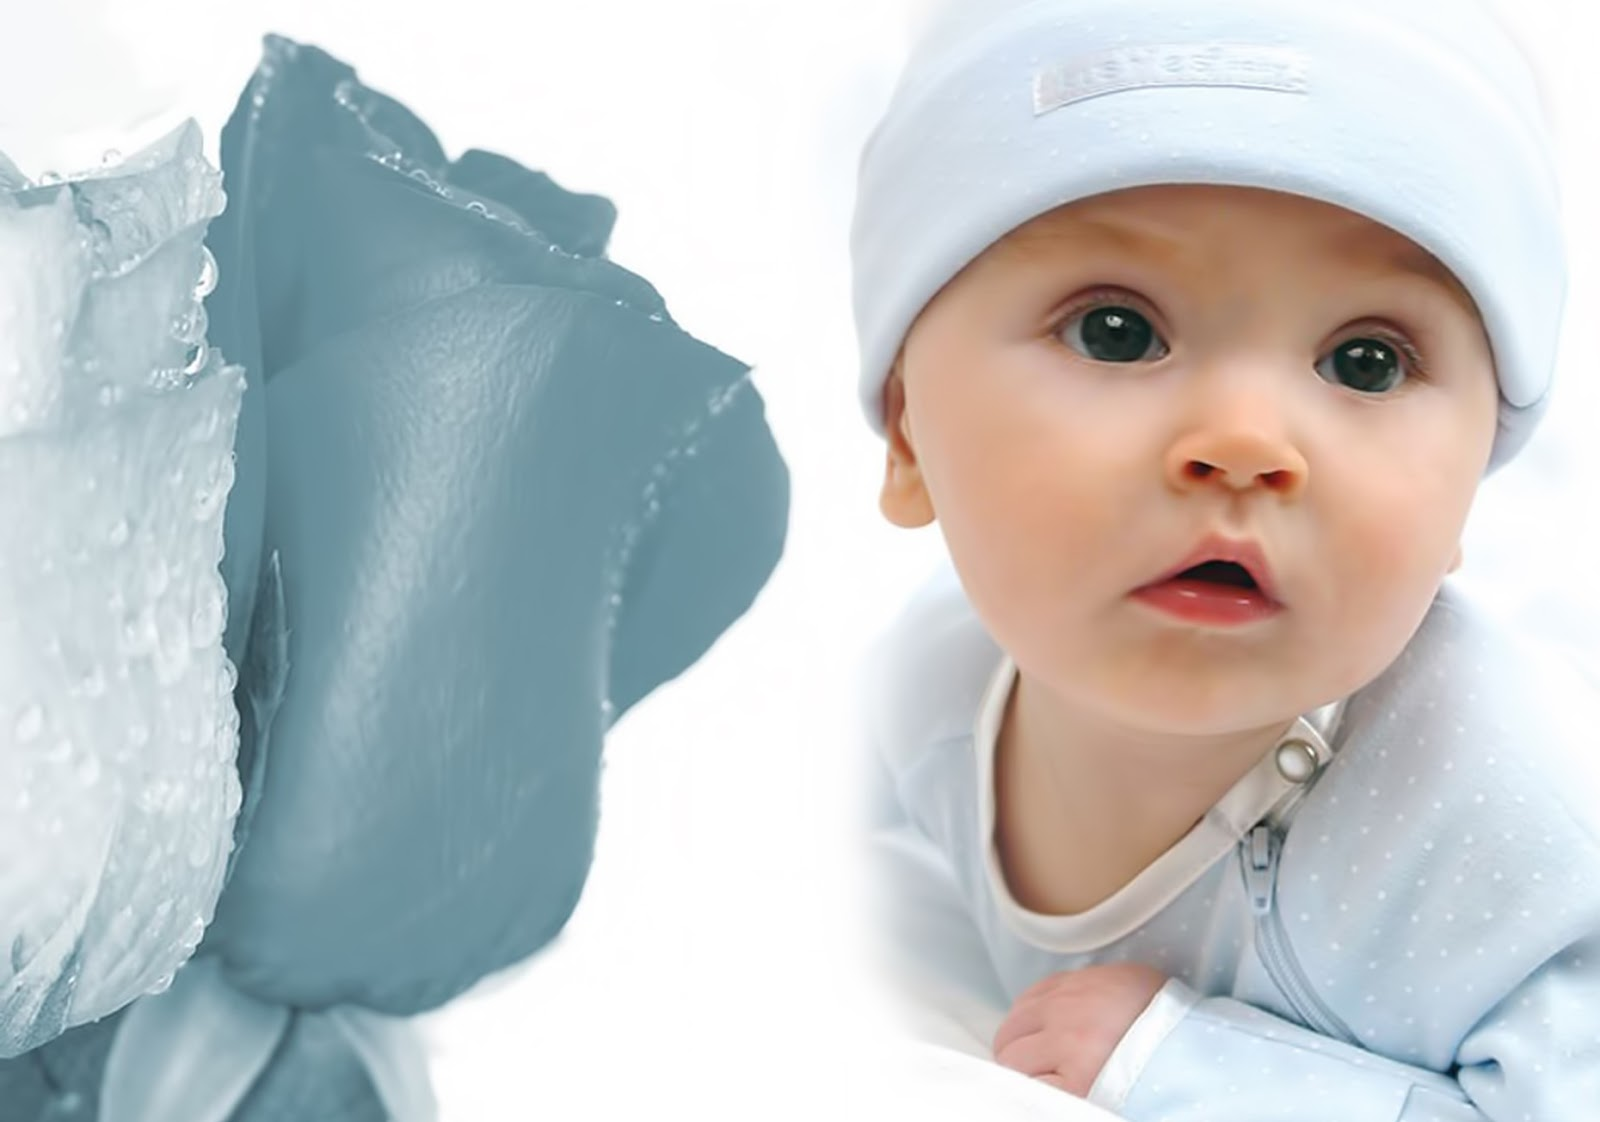 Nature Wallpapers Cute Babies Wallpapers Wallpaper: Cute Babies Wallpapers: Download Baby Desktop Screen